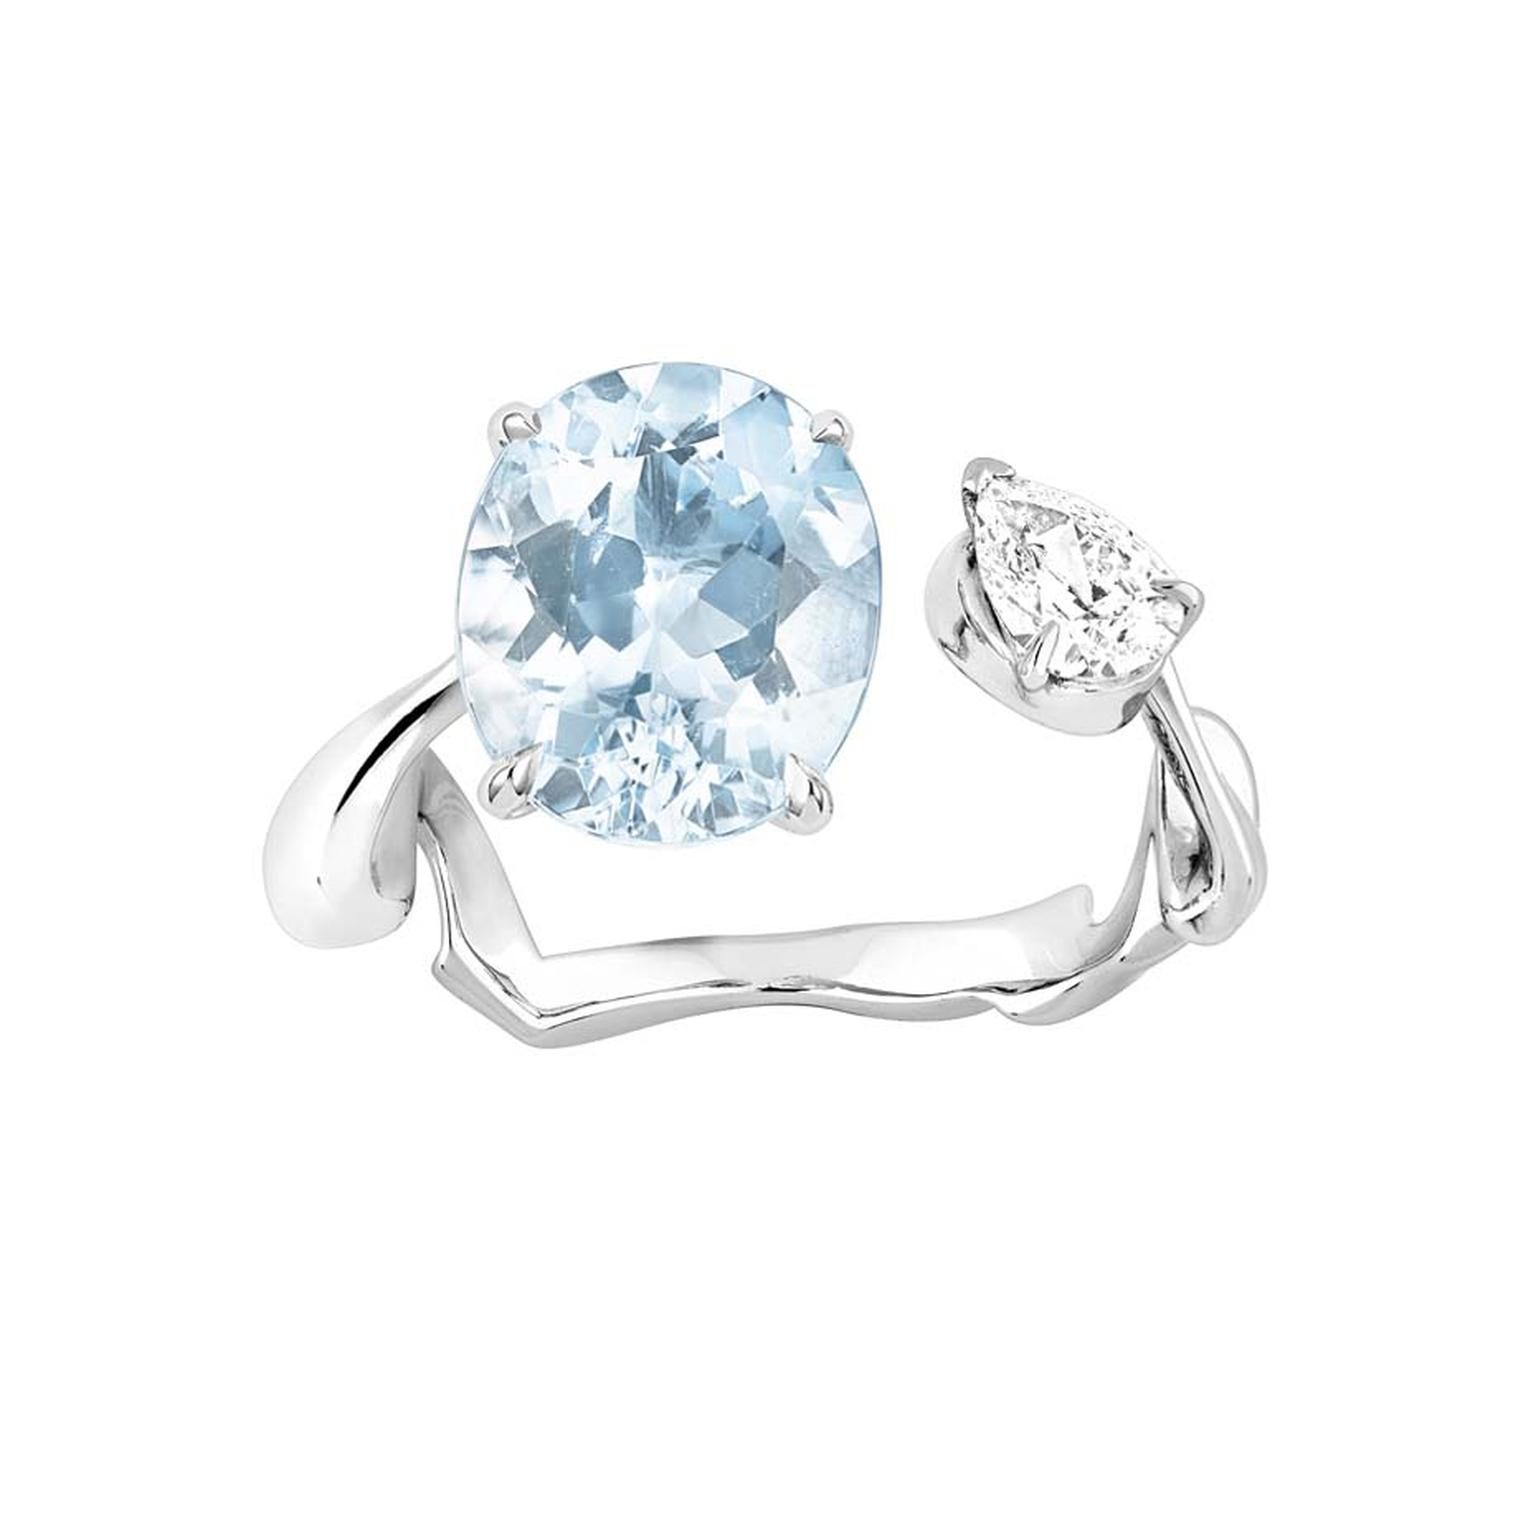 The twisted ribbon on a Diorama couture dress, designed by Christian Dior in 1951, is the inspiration behind this Dior ring in white gold with aquamarine and diamonds.